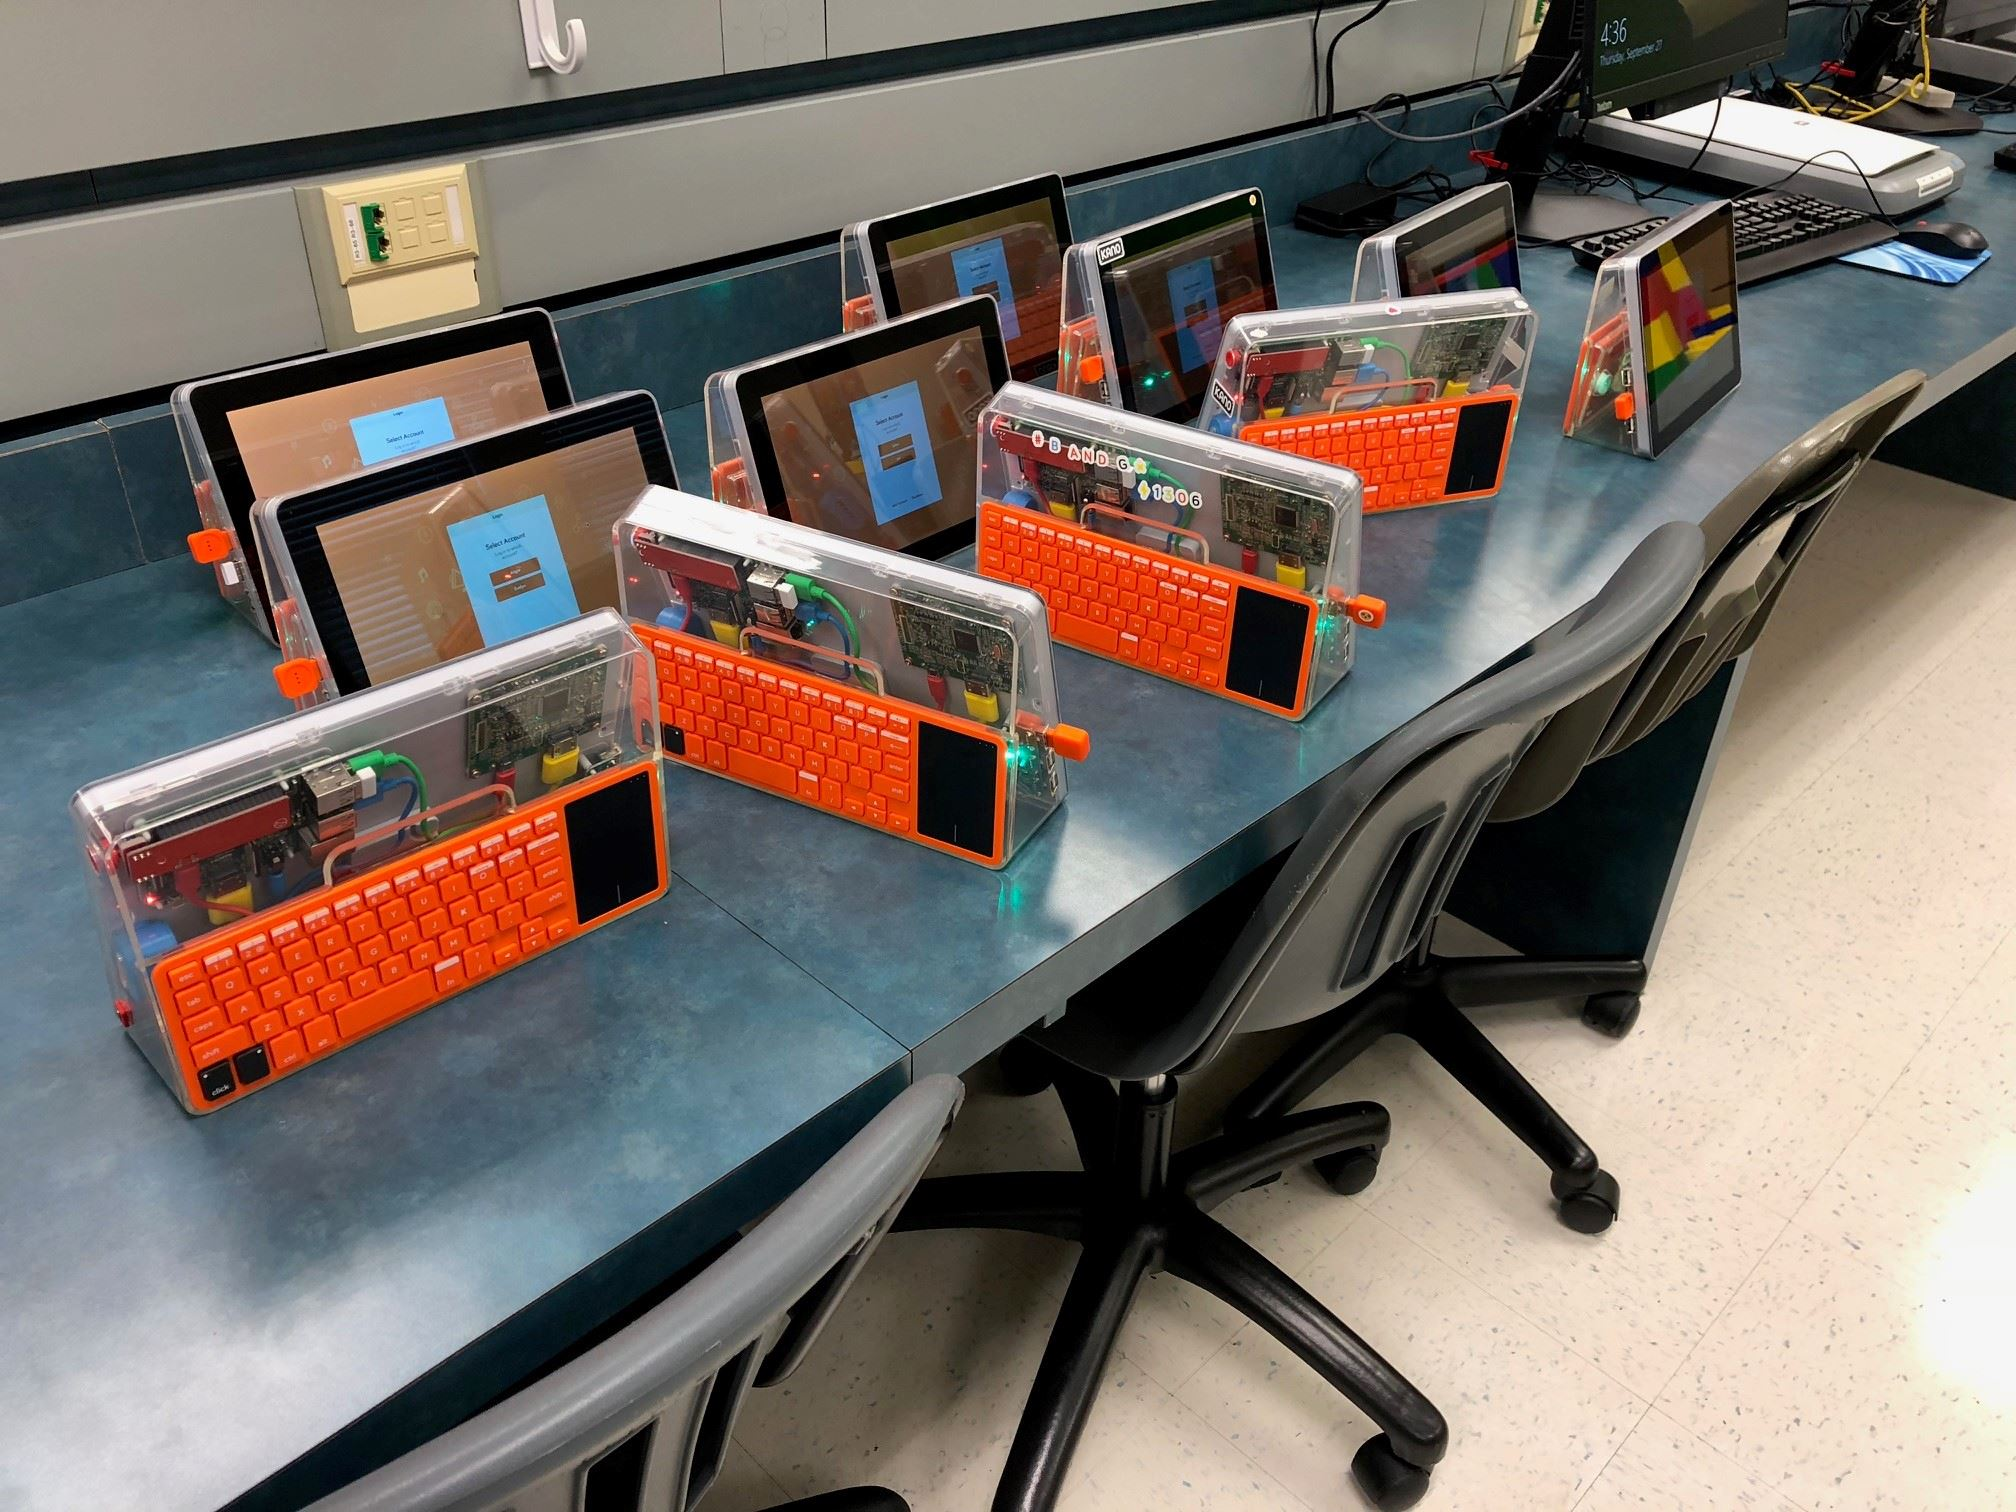 Students built Kanos computers in EDGE Academy